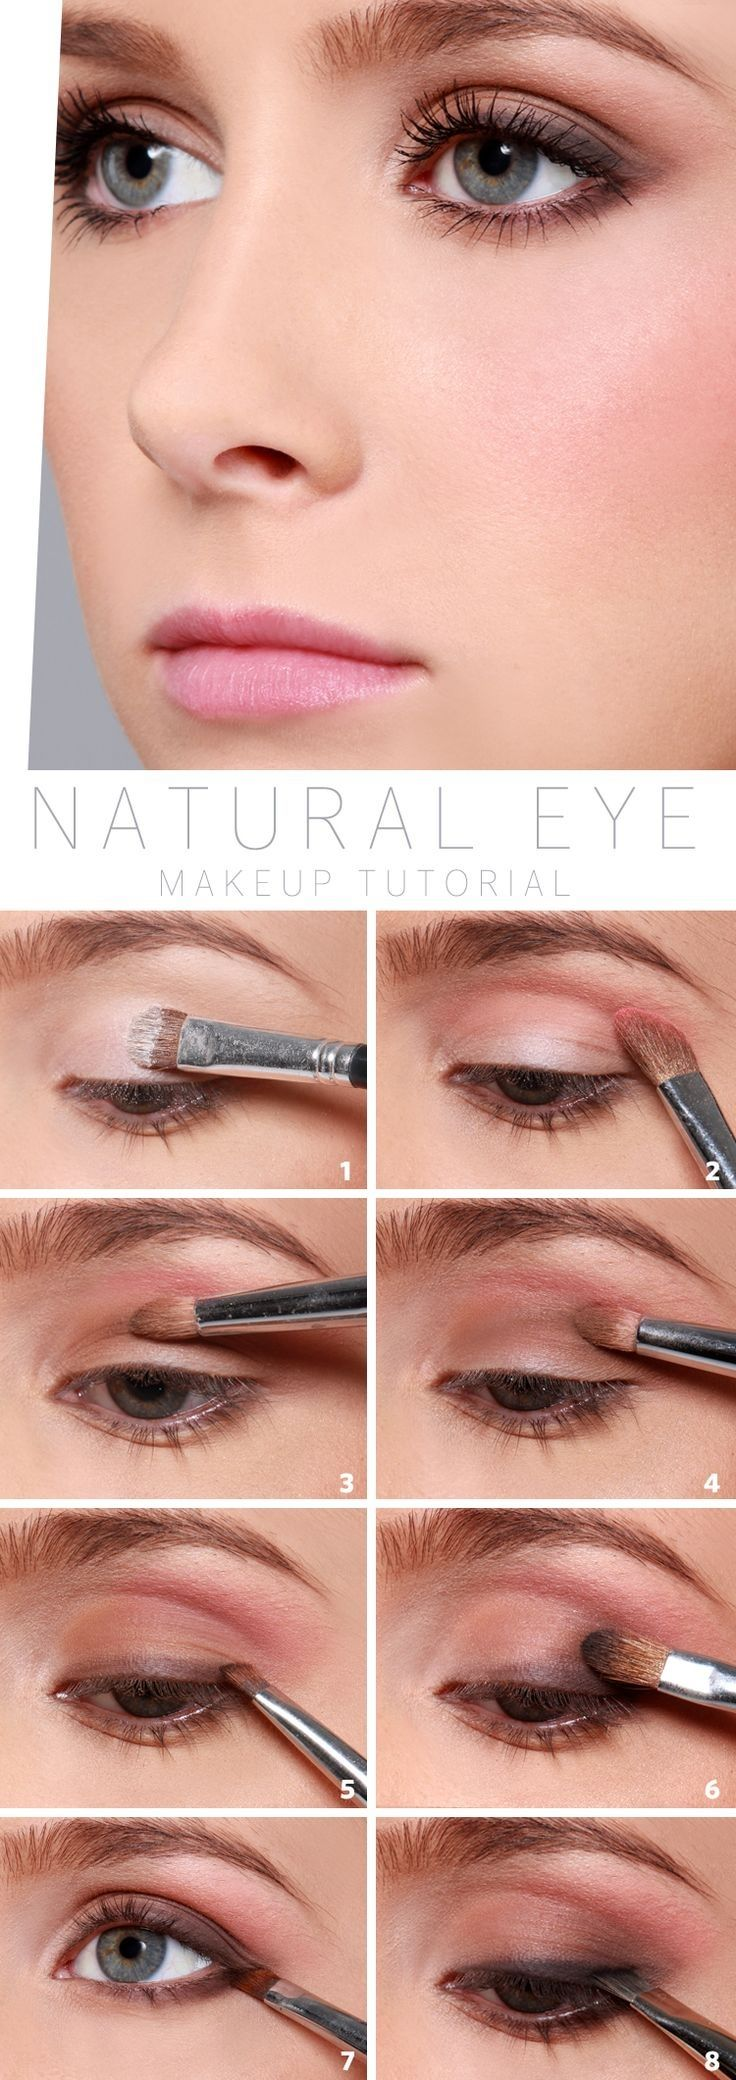 Nude eyeshadow tutorial. Visit Beauty.com to find products that will bring out your natural beauty.